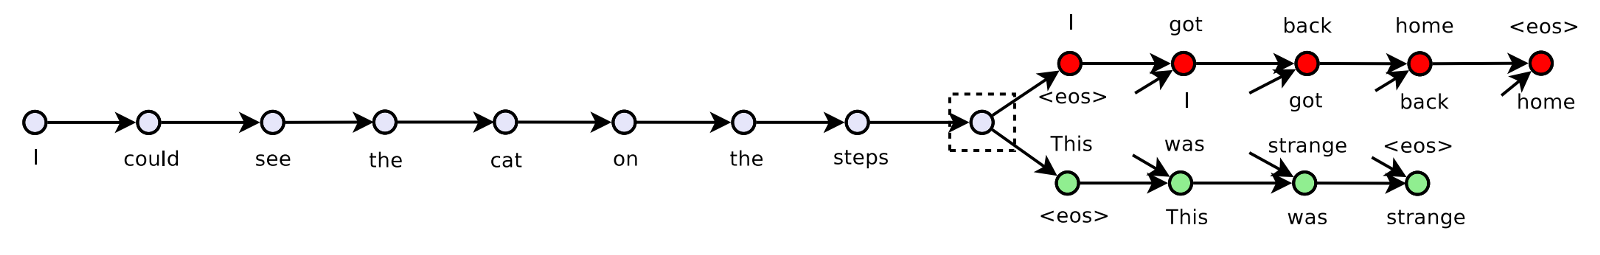 A diagram showing how a sentence is predicted by the sentence that follows and precedes it.